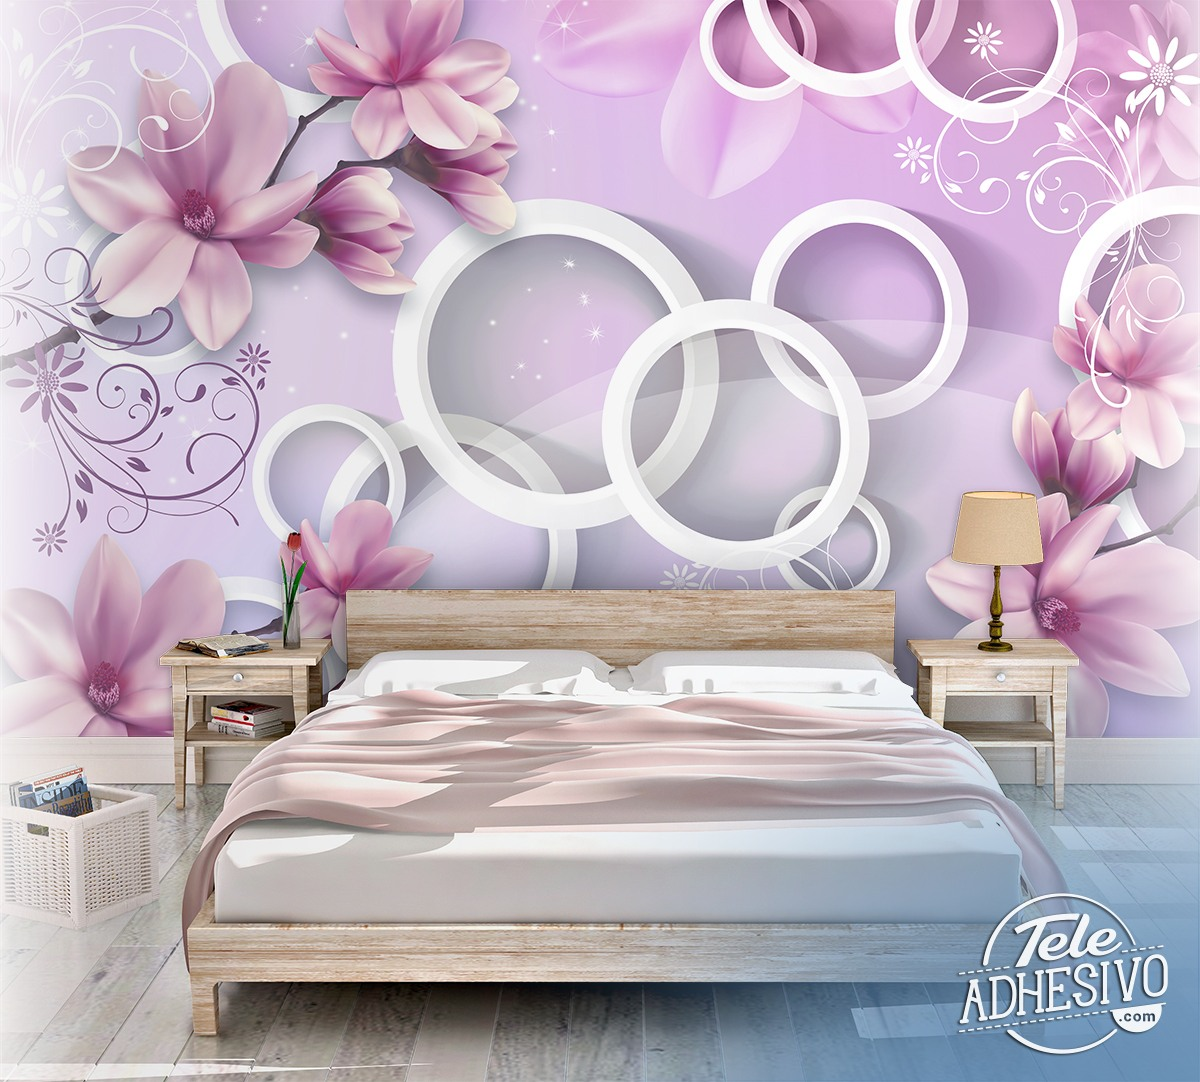 Wall Murals: Flower of the Emperor